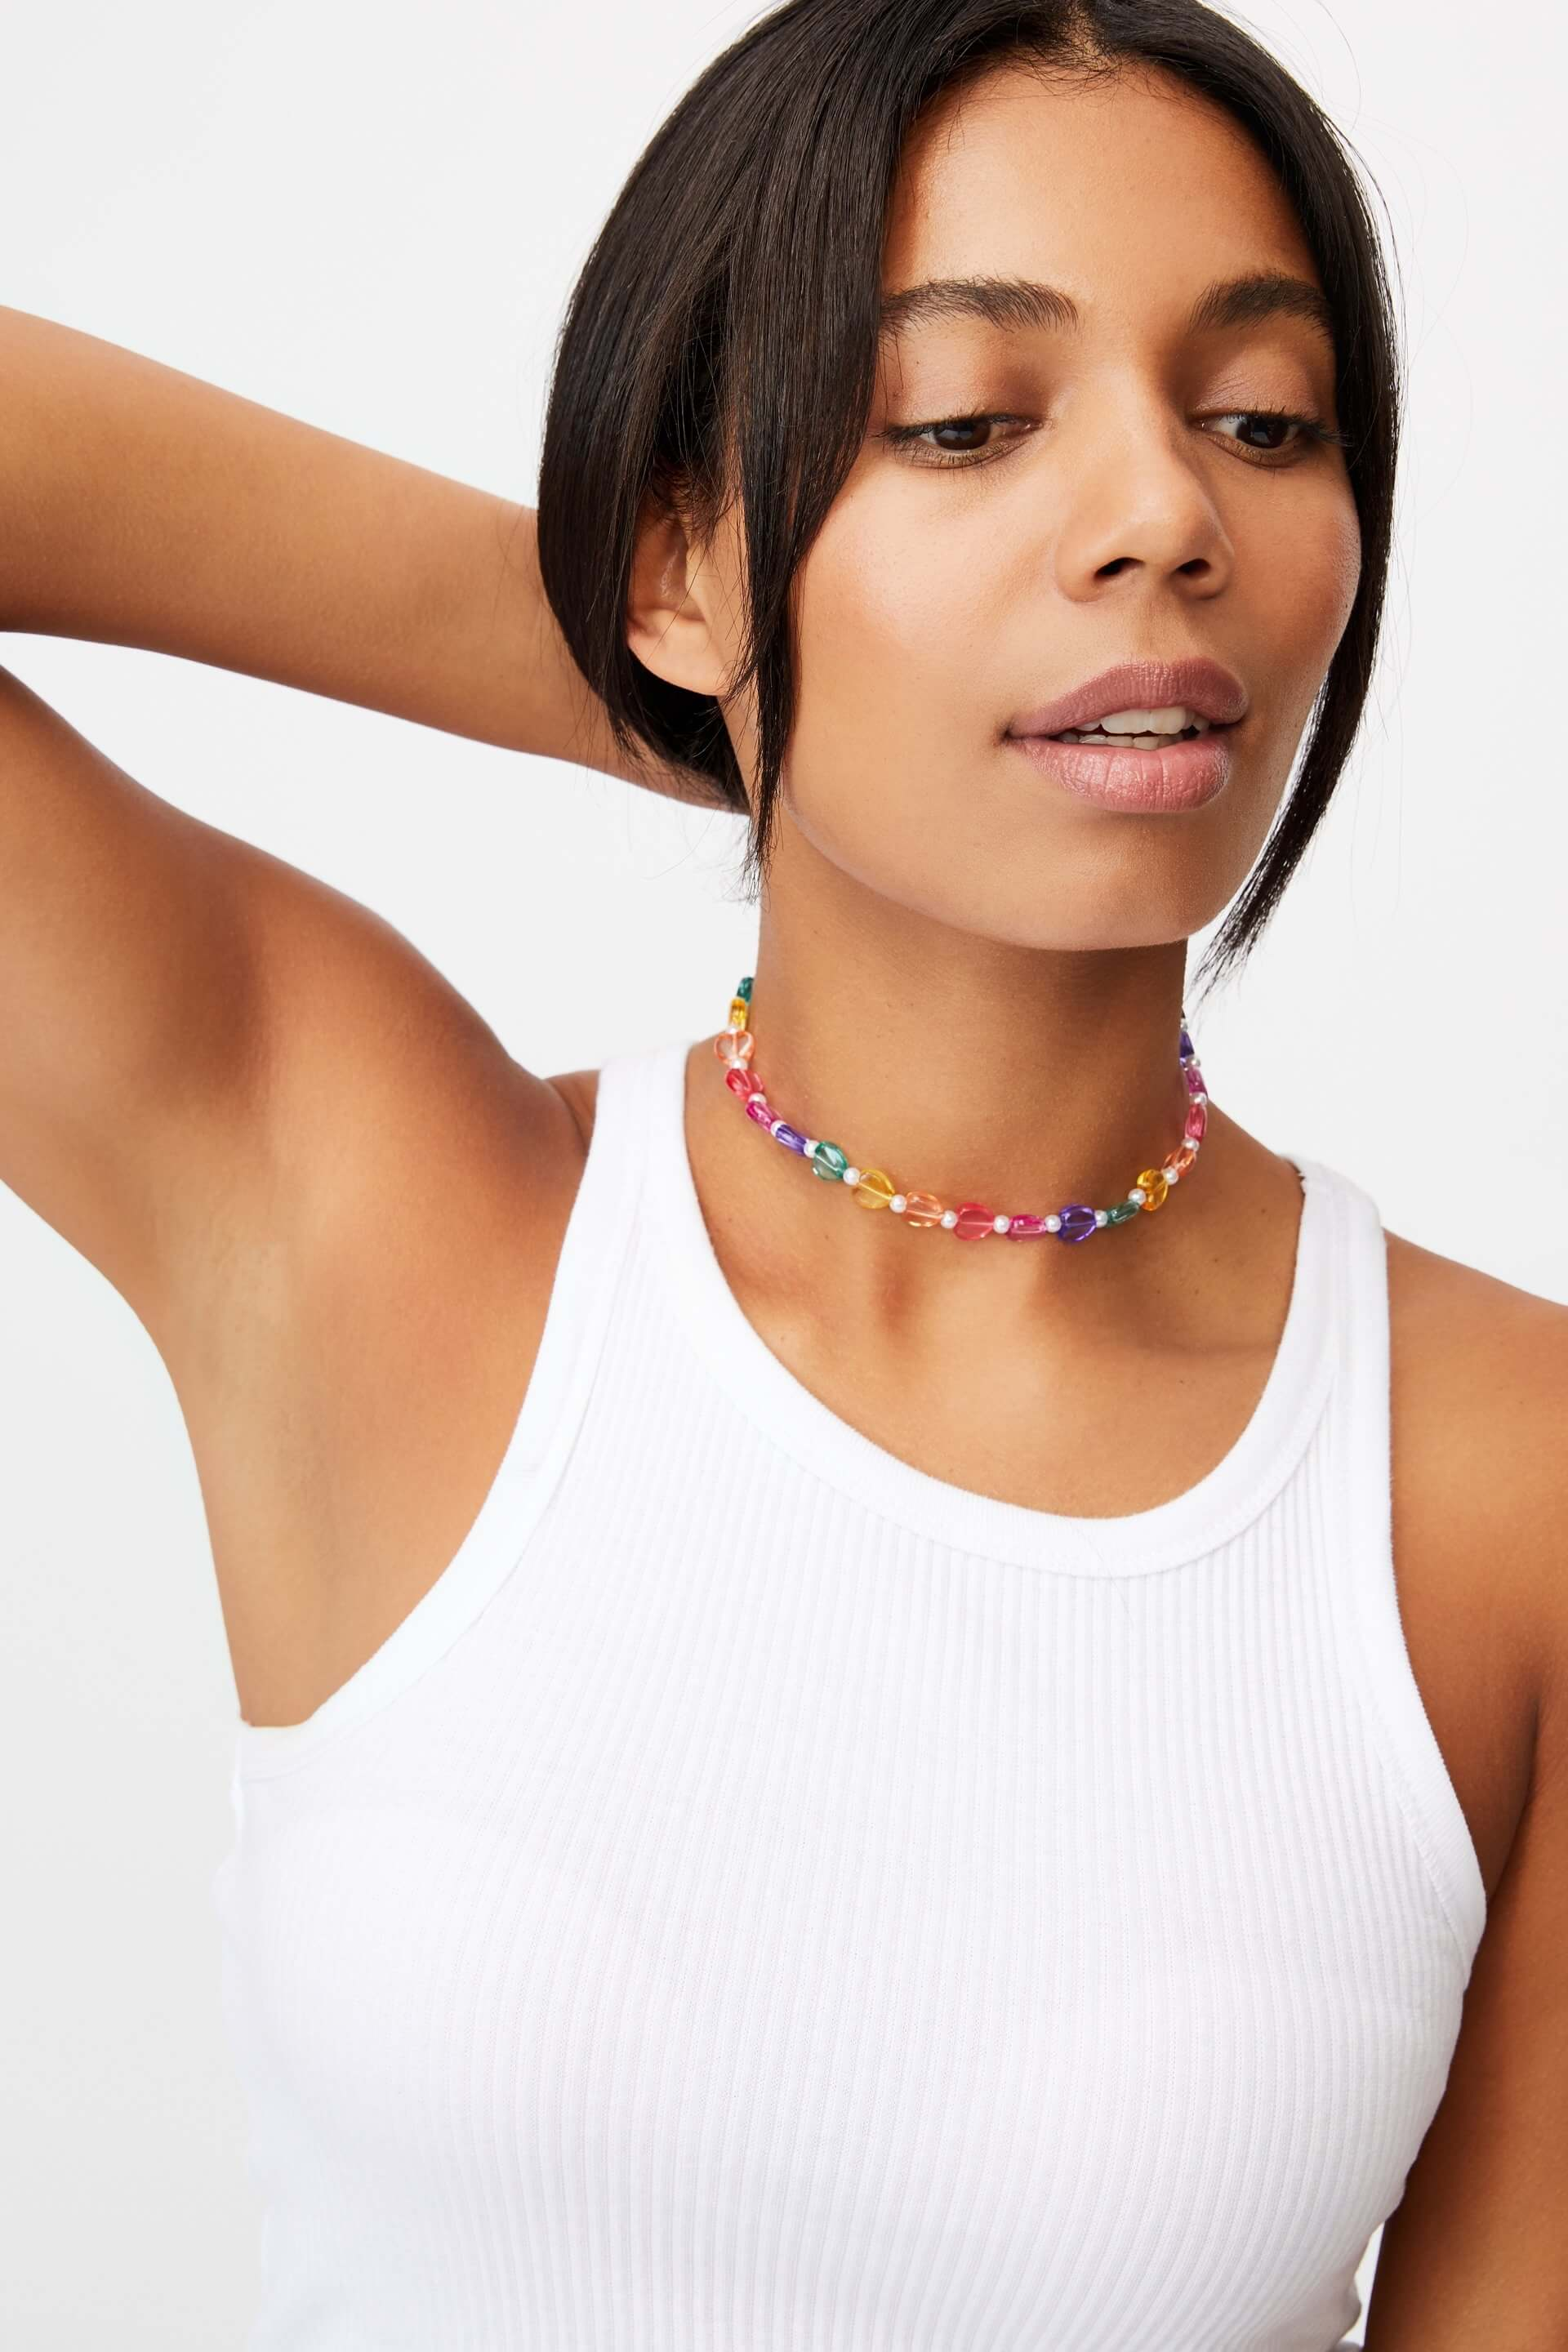 a girl wearing a beaded necklace by cotton on